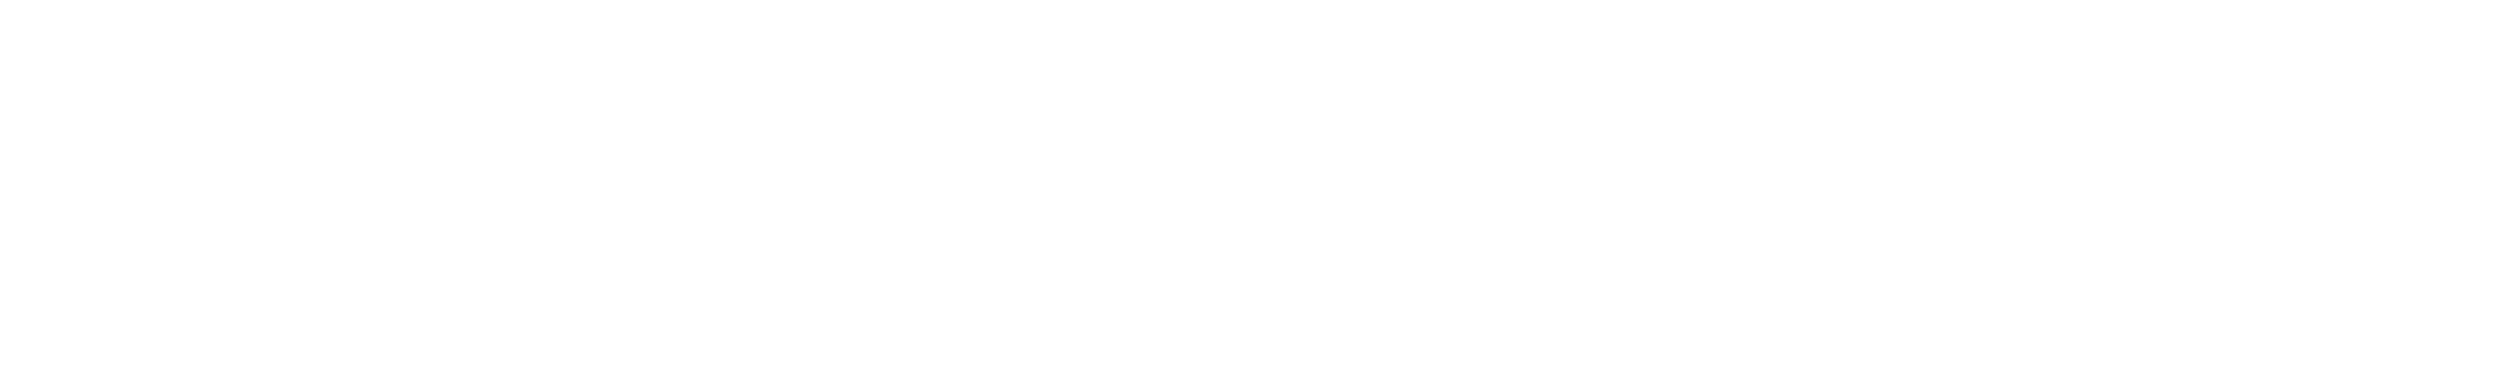 we-are-pablo-and-dani-2.png